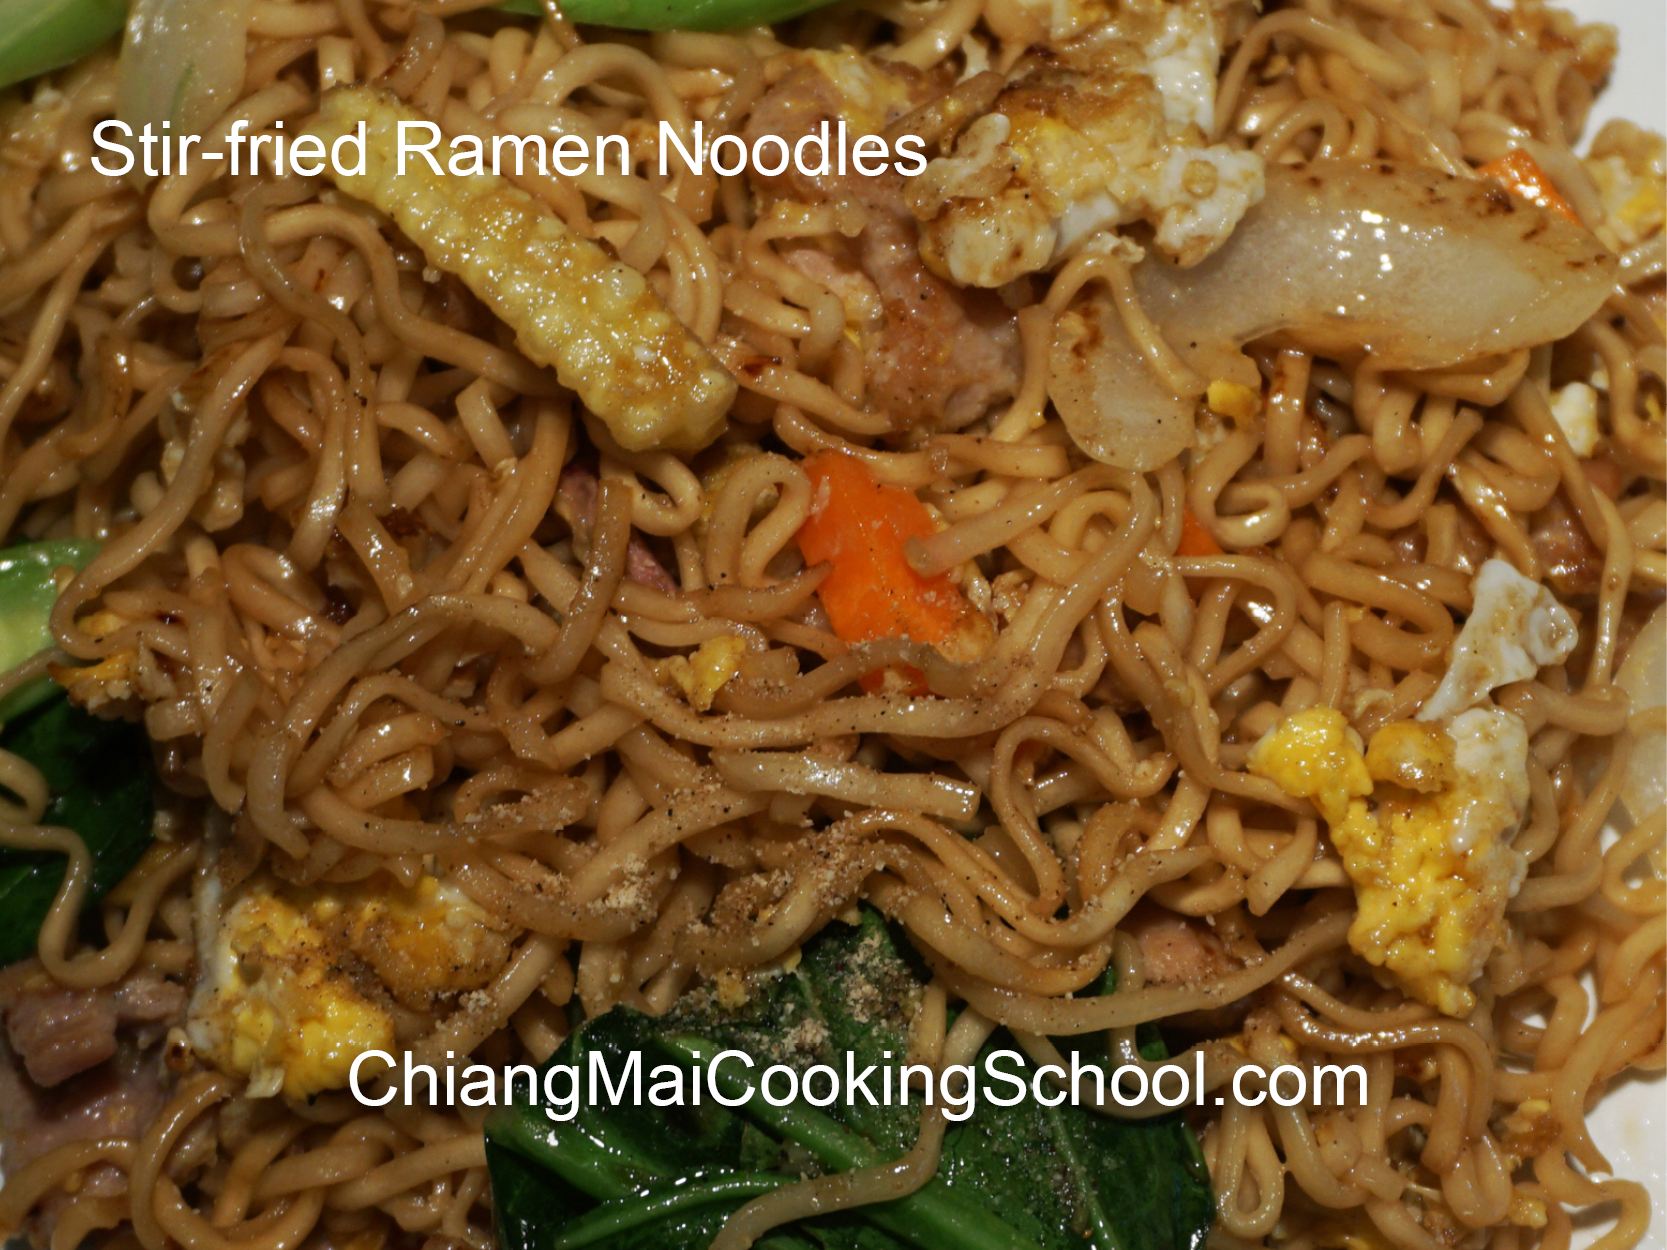 Delicious Stir-fried Ramen Noodles from Chiang Mai Cooking School